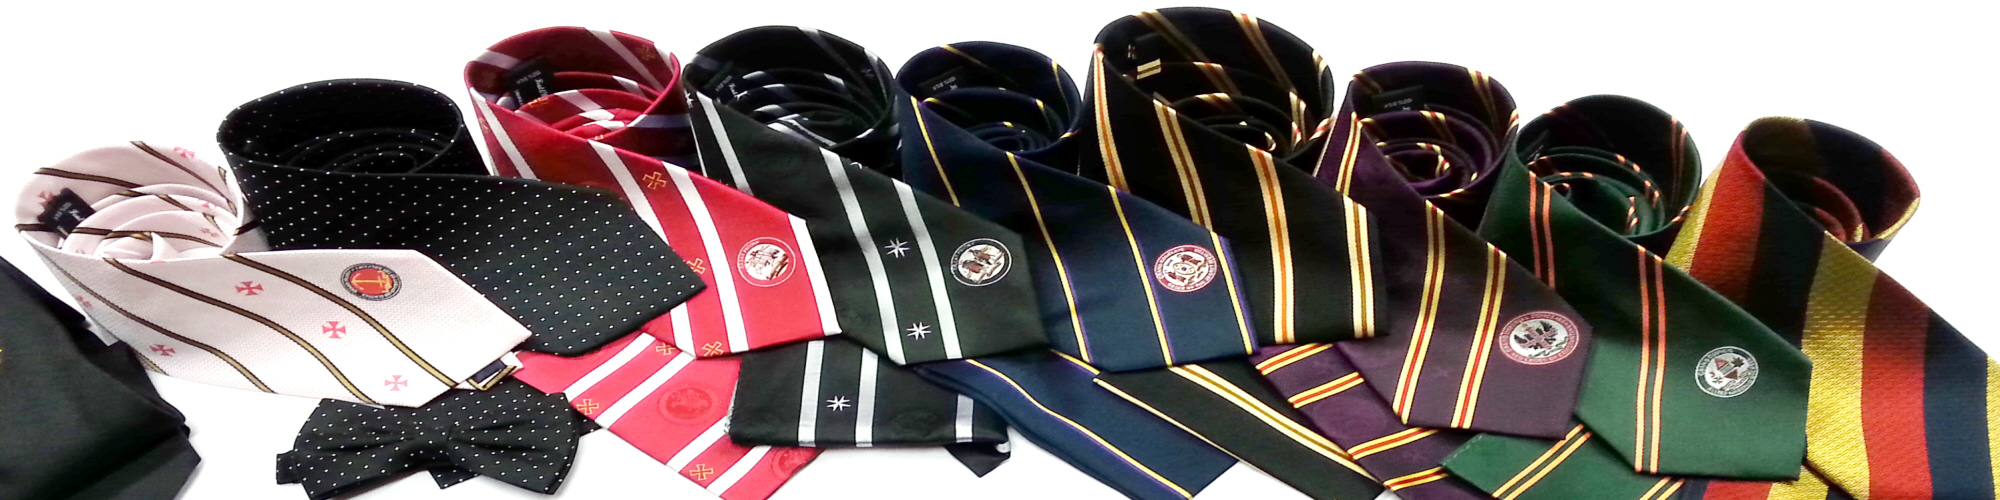 For Our Tie & Handkerchief Selection Click here!